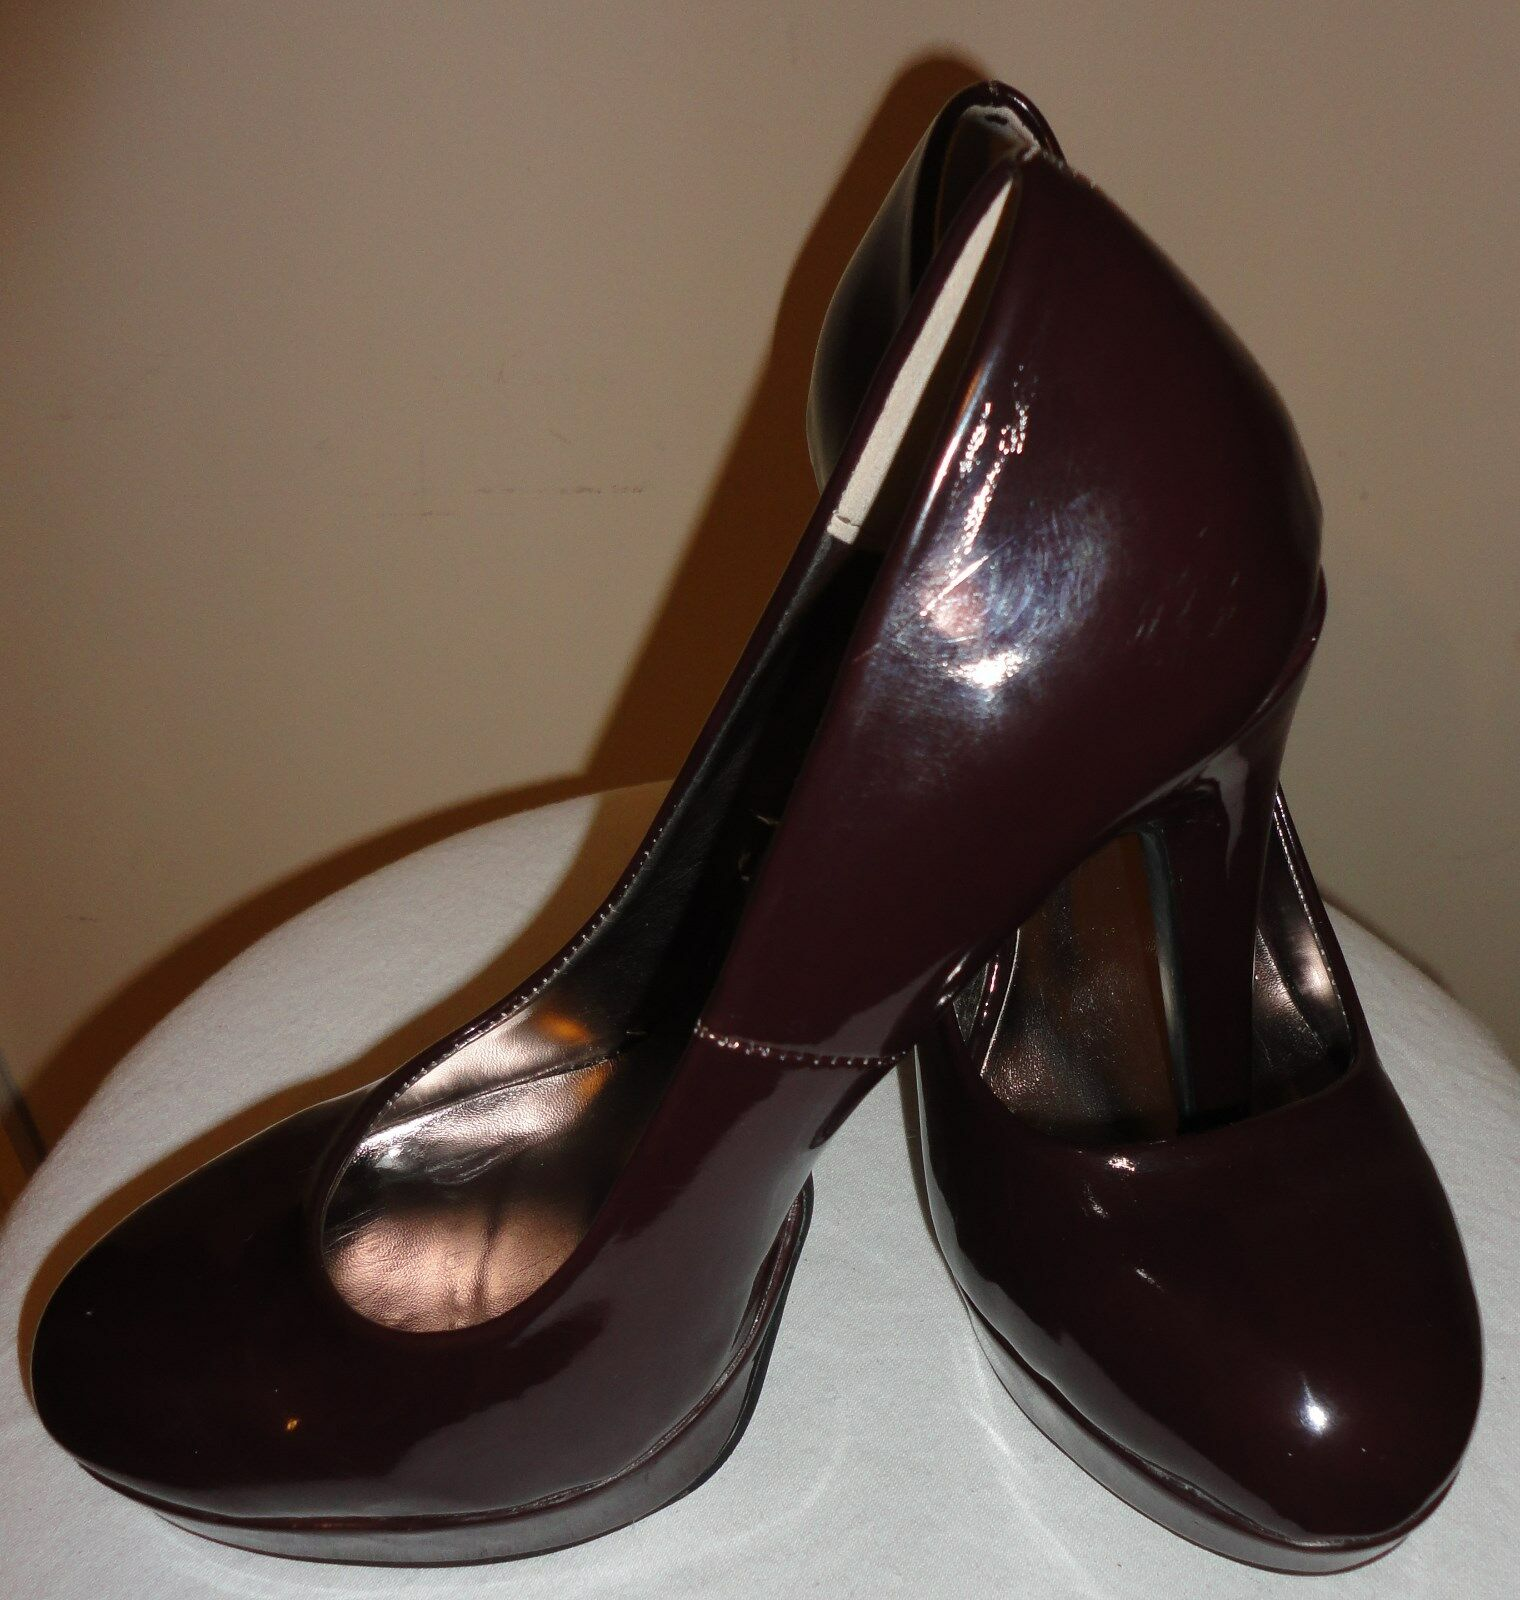 Steve Madden Patent Pumps Leather Pumps Patent 8.5 Burgundy c7f9cb